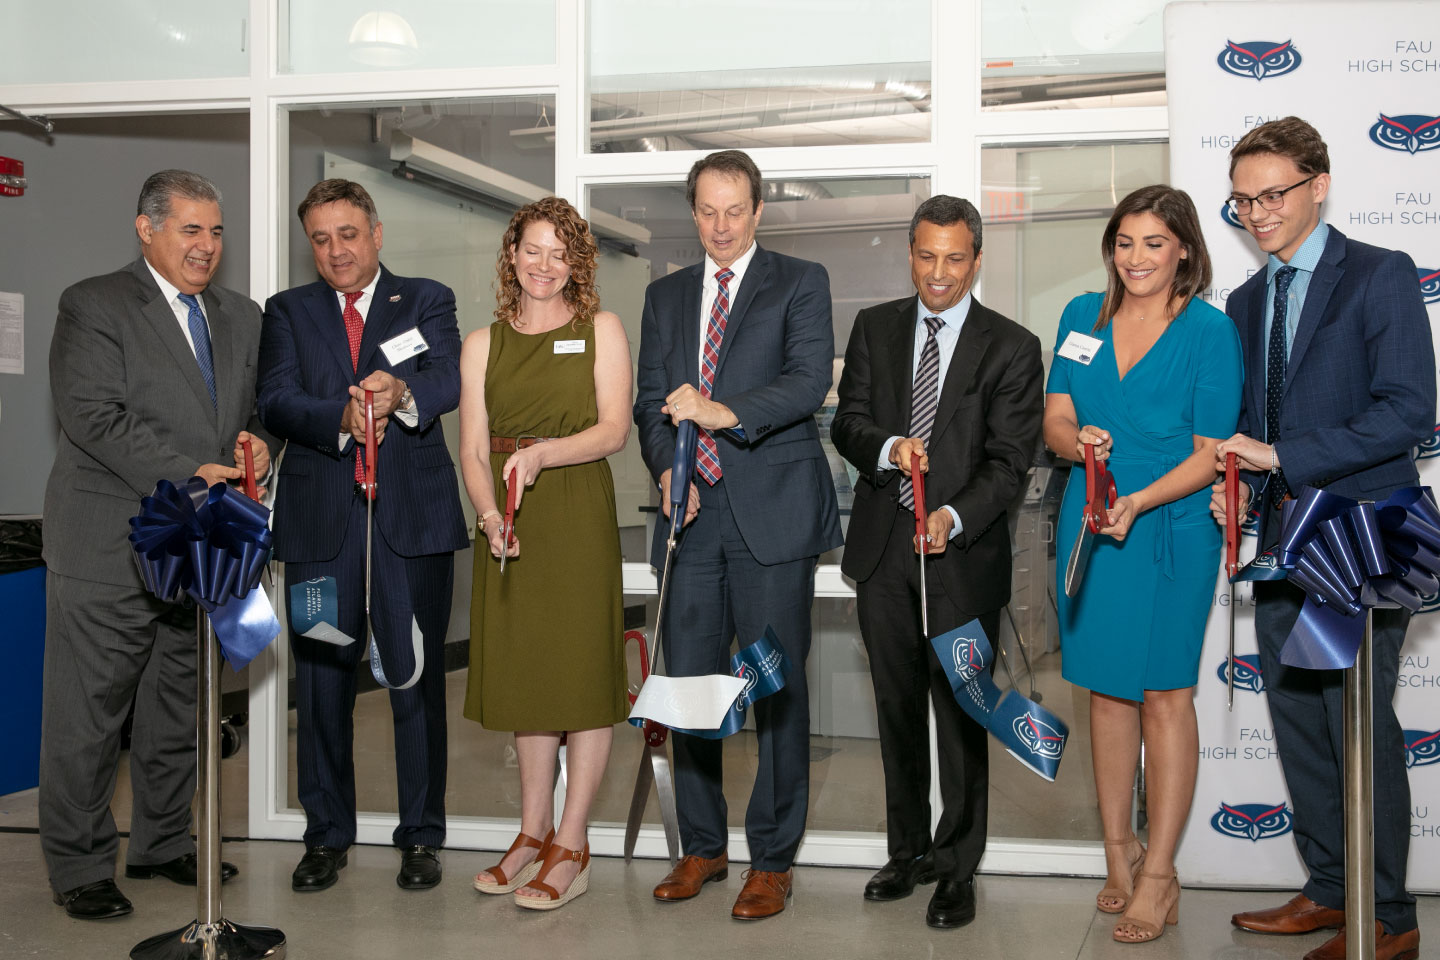 From left to right, Anthony Barbar, FAU Board of Trustees chair emeriti; FAU Board of Trustees Chair Abdol Moabery; Tricia Meredith, Ph.D.; FAU President John Kelly; Joel Herbst, Ed.D.; Gianna Caserta; Nick Pizzo. (Photo by Alex Dolce)